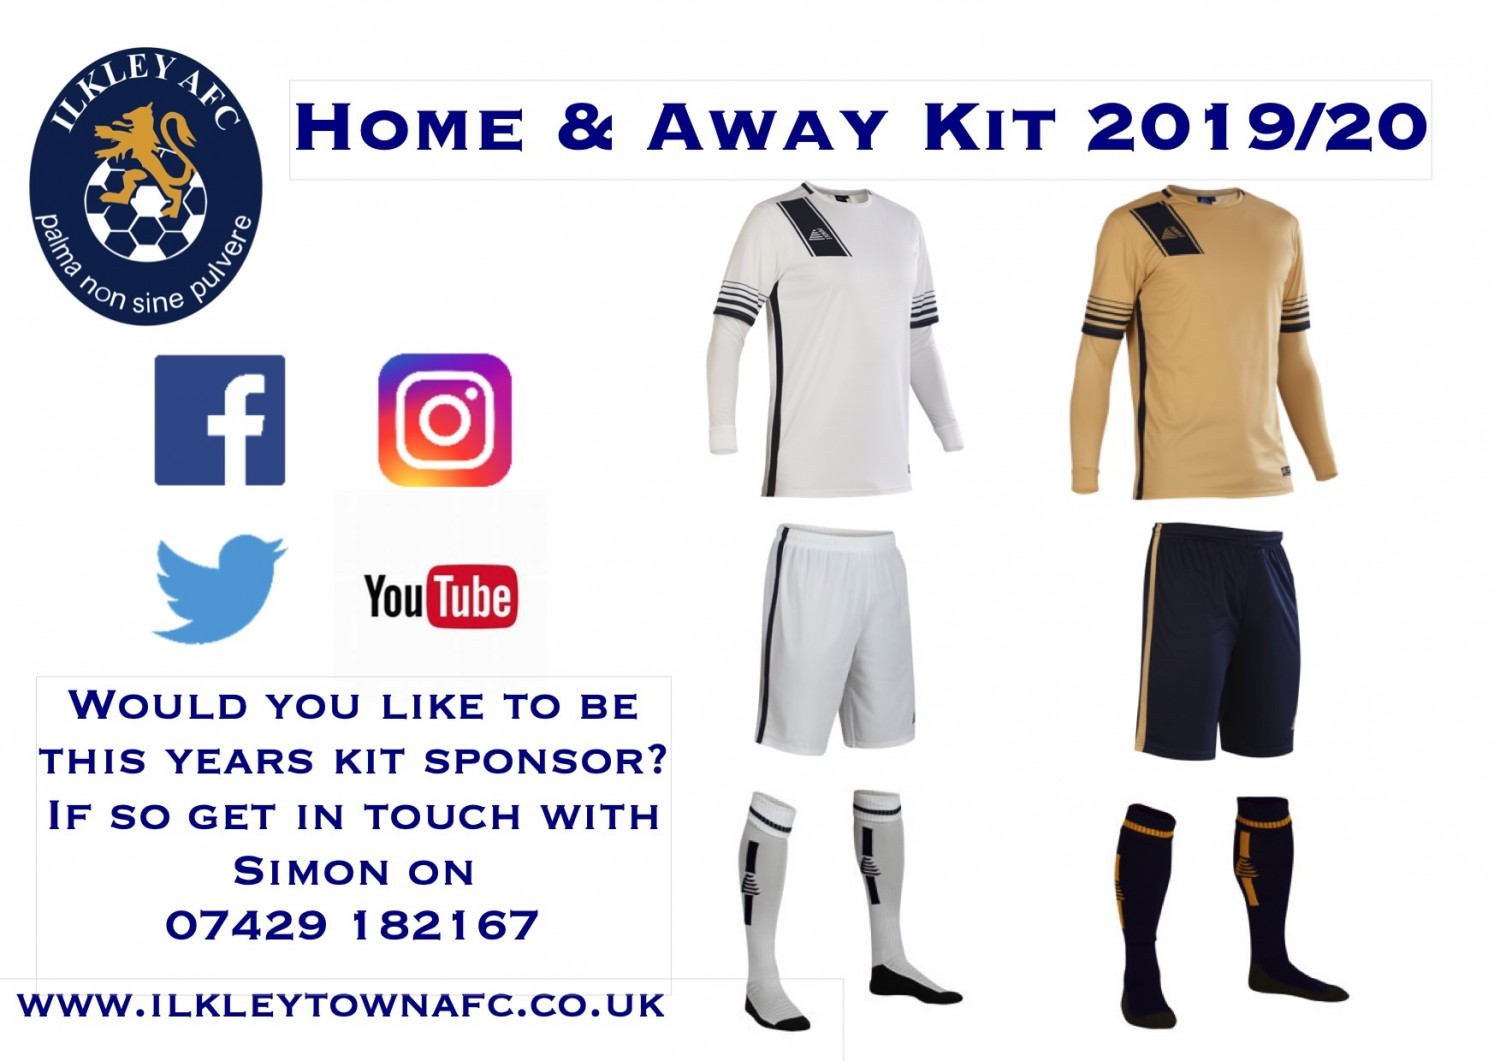 19/20 Kit Announcement!